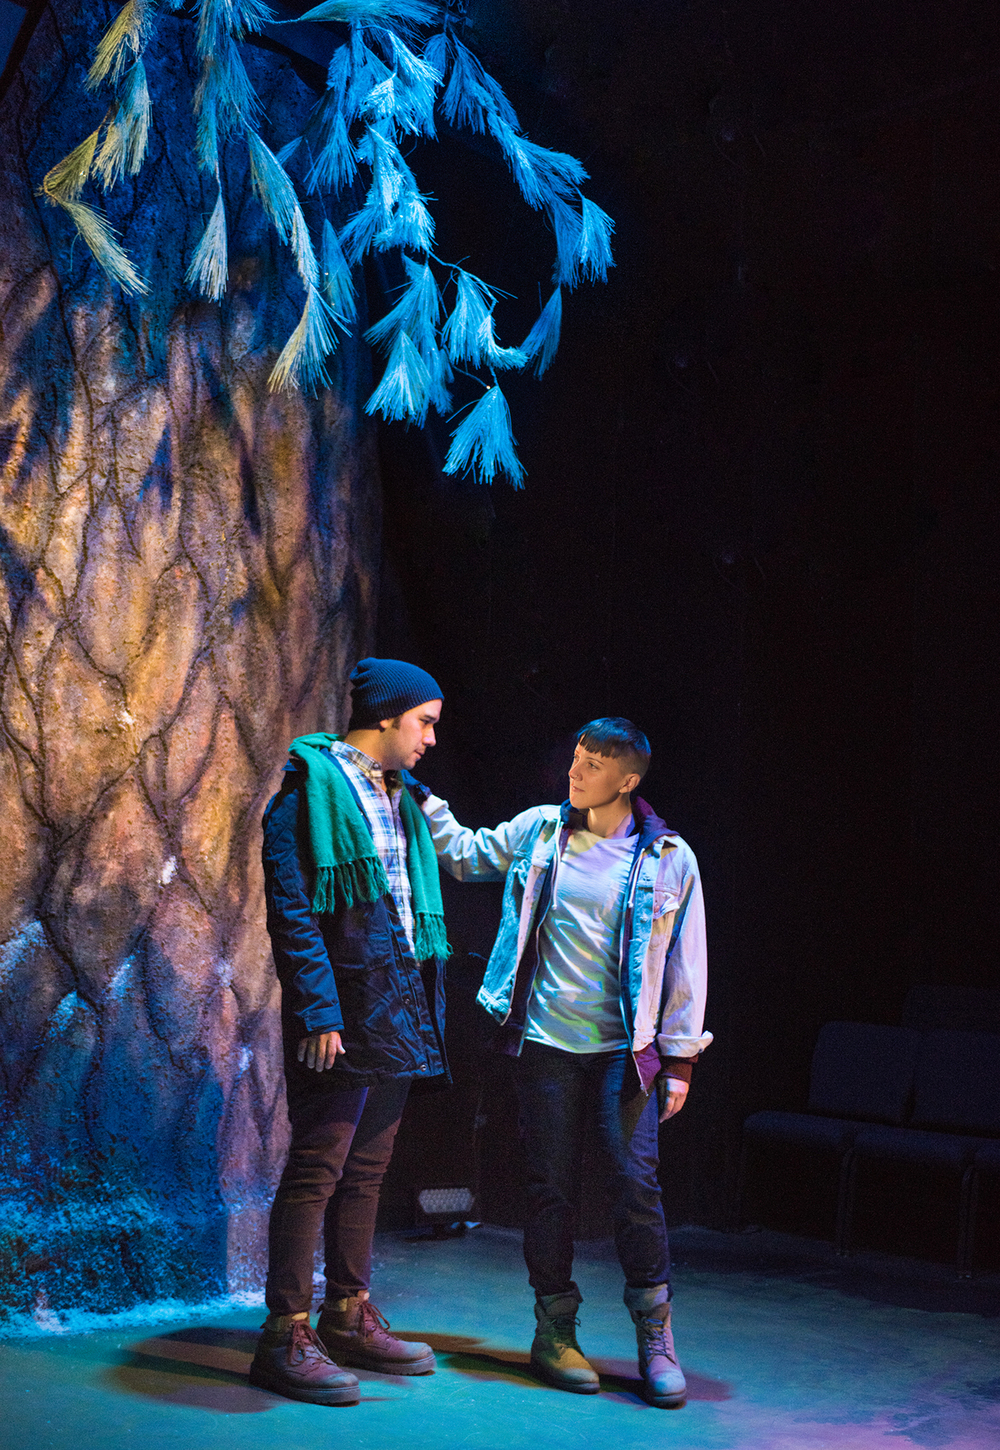 Matthew Hannon, SK Kerastas.  Scenic Design by Christian V. Mejia, Costume Design by Miriam Lewis, Lighting Design by Anthony Powers, Sound Design by James Ard, Puppet Design by Dave Haaz-Baroque, Prop Design by Adeline Smith.  Photo by Lois Tema.